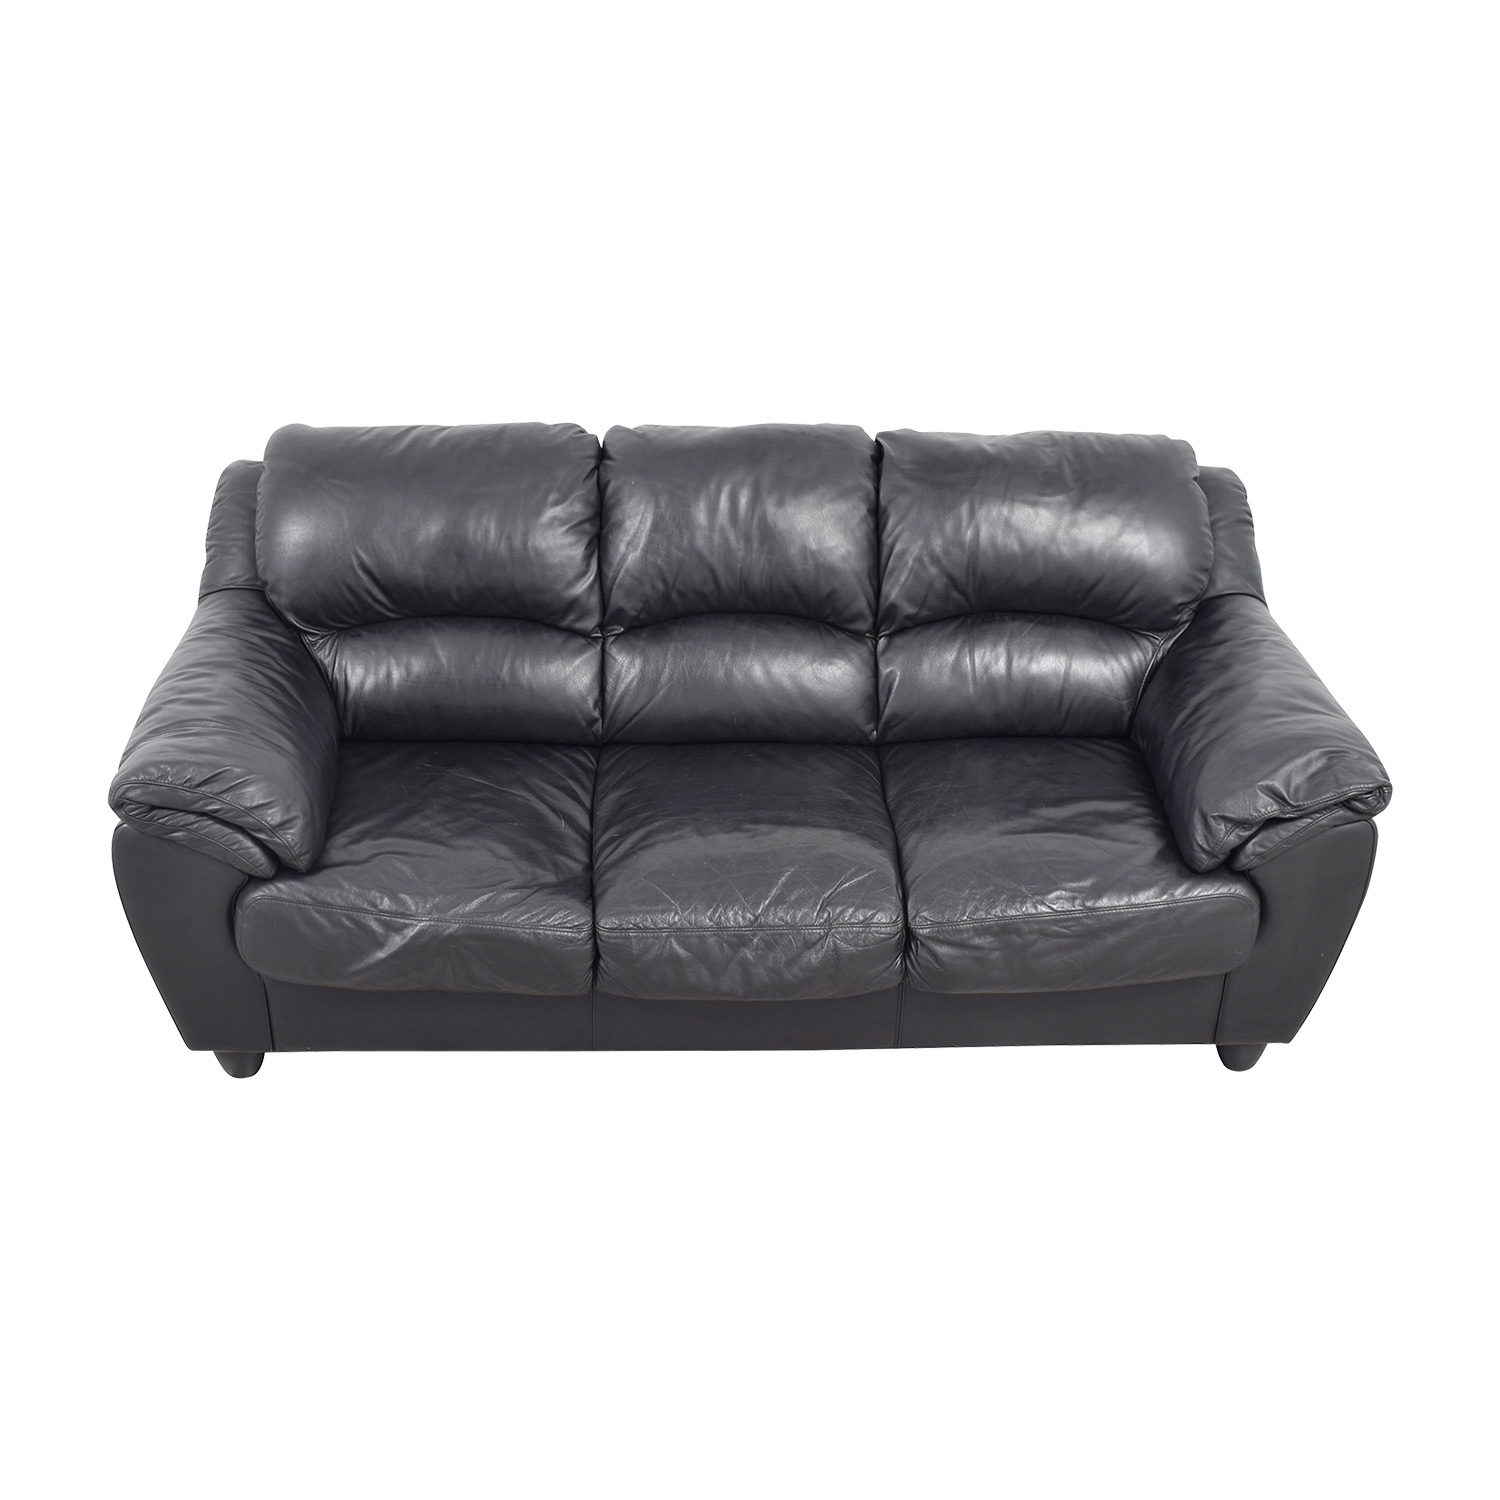 Enjoyable 90 Off Raymour Flanigan Raymour Flanigan Black Leather Couch Sofas Short Links Chair Design For Home Short Linksinfo